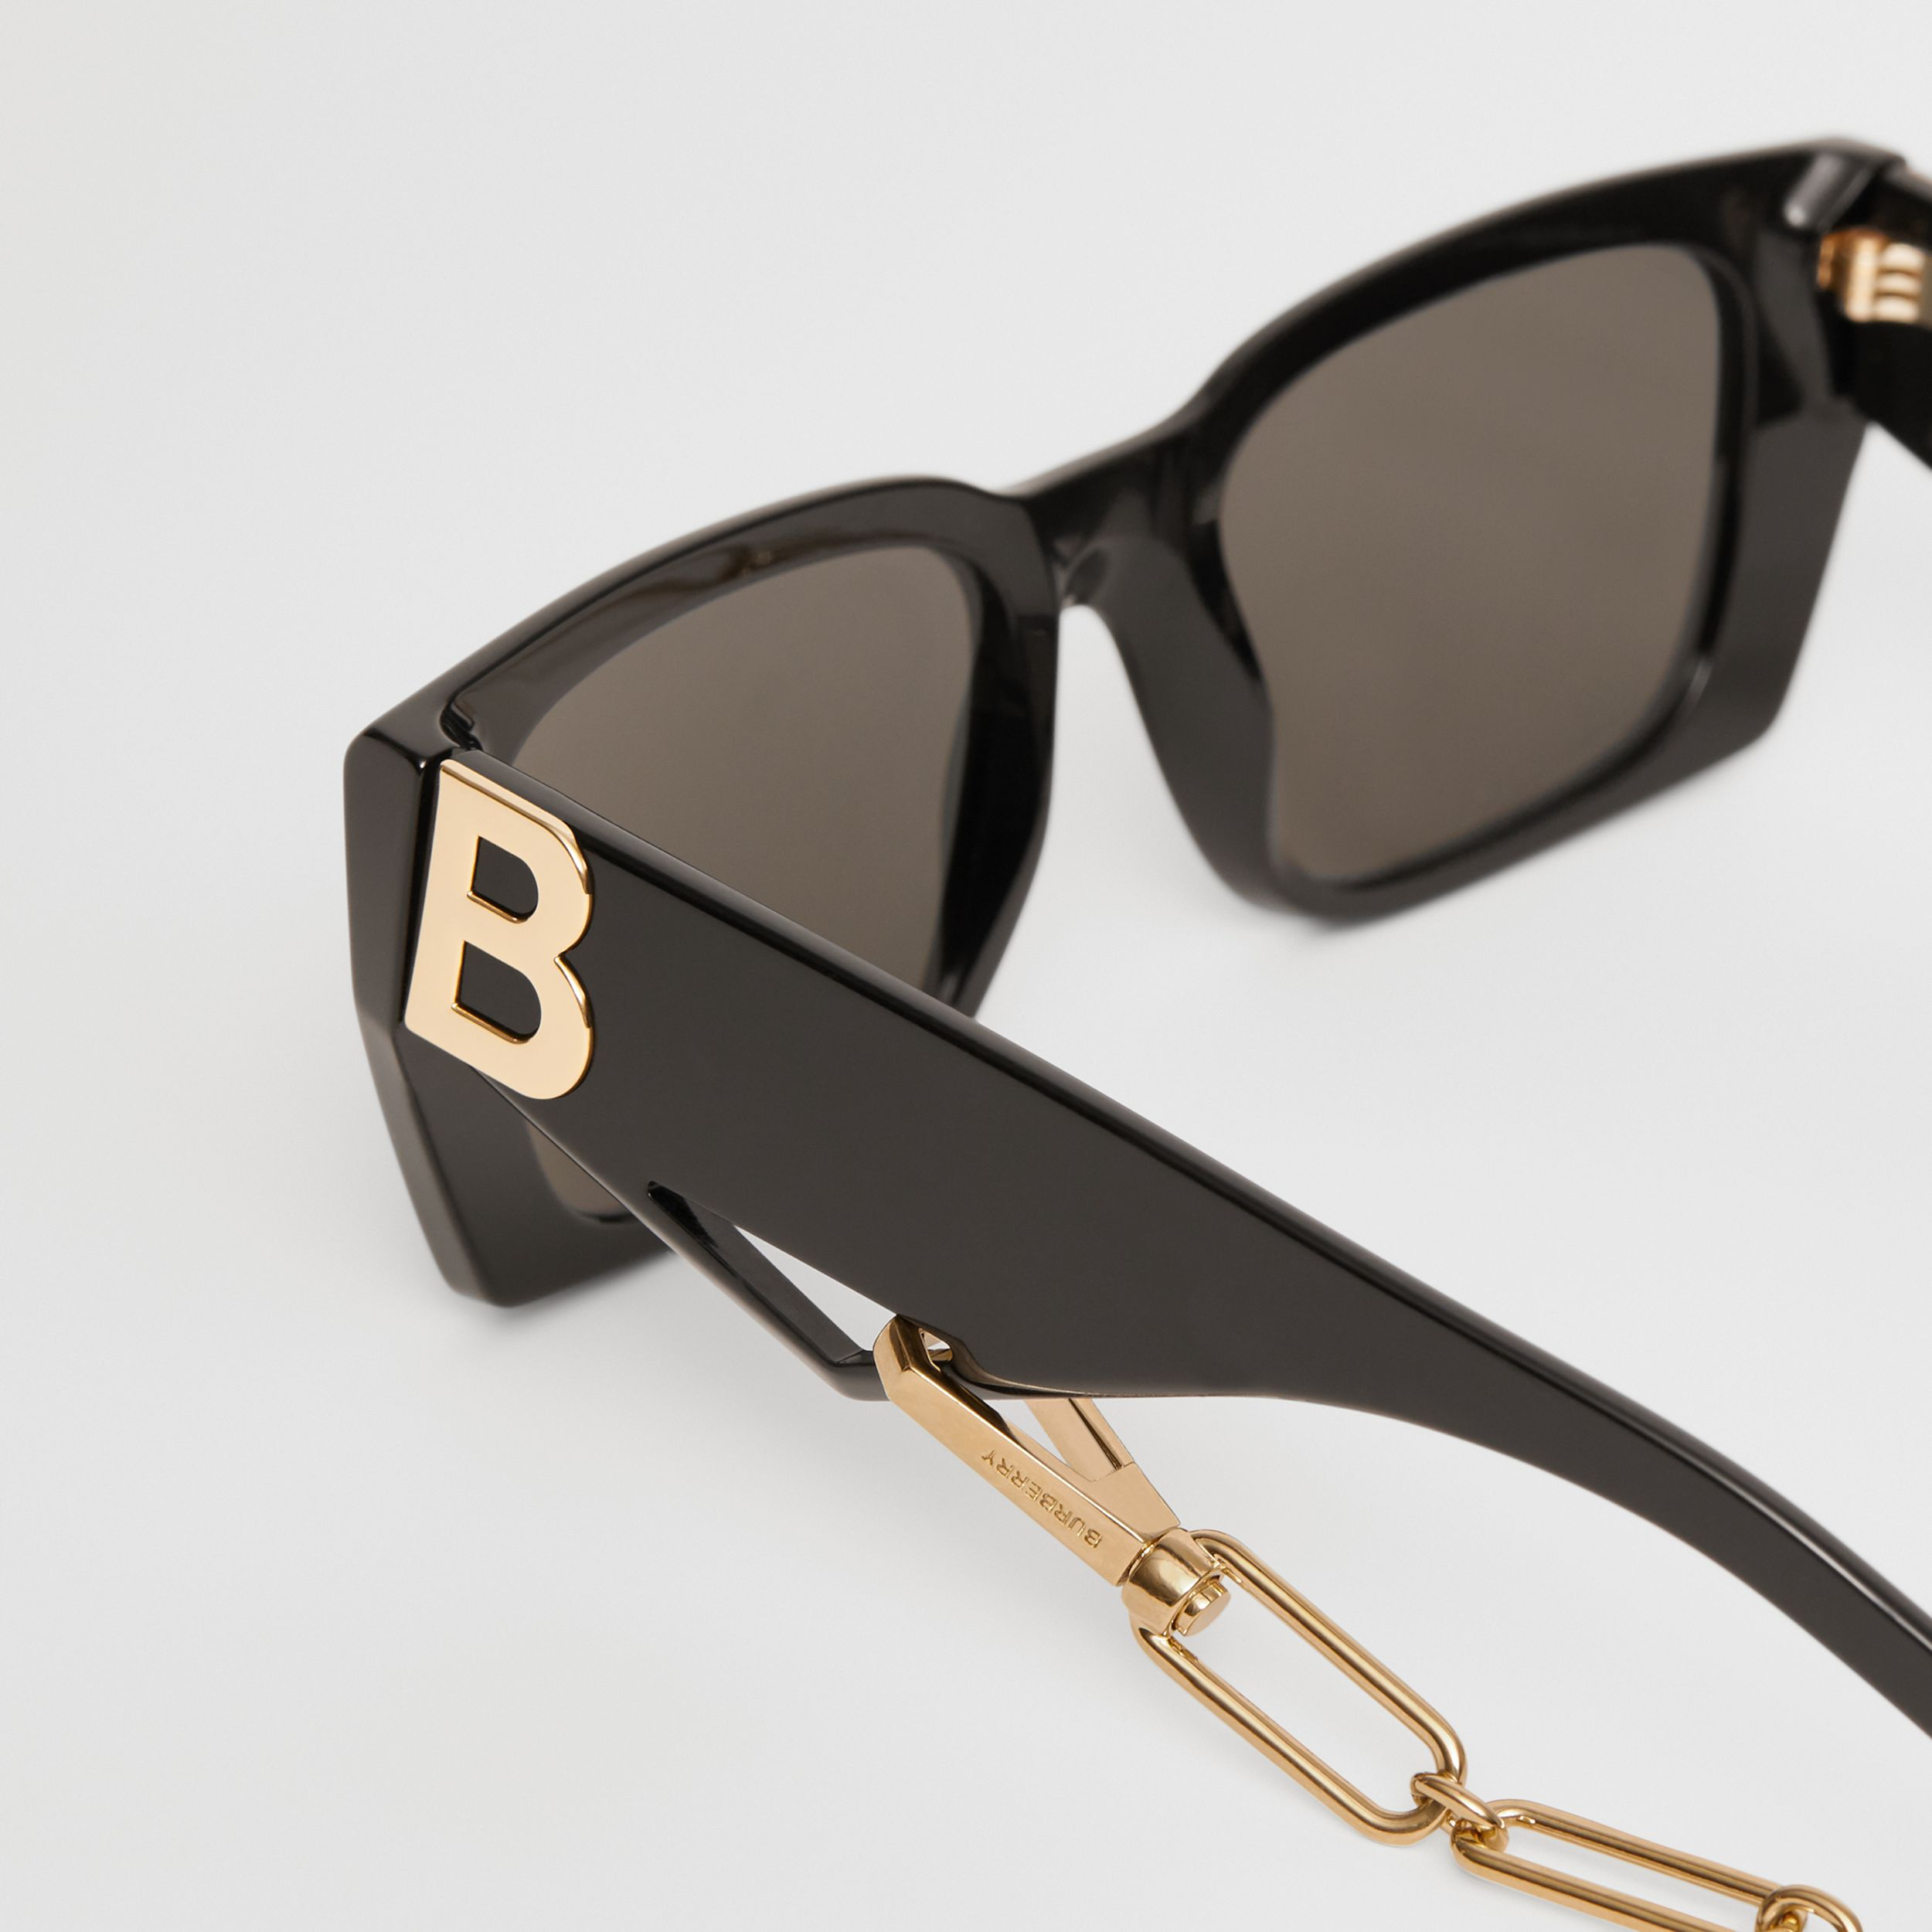 B Motif Rectangular Frame Sunglasses with Chain in Black - Women | Burberry - 2